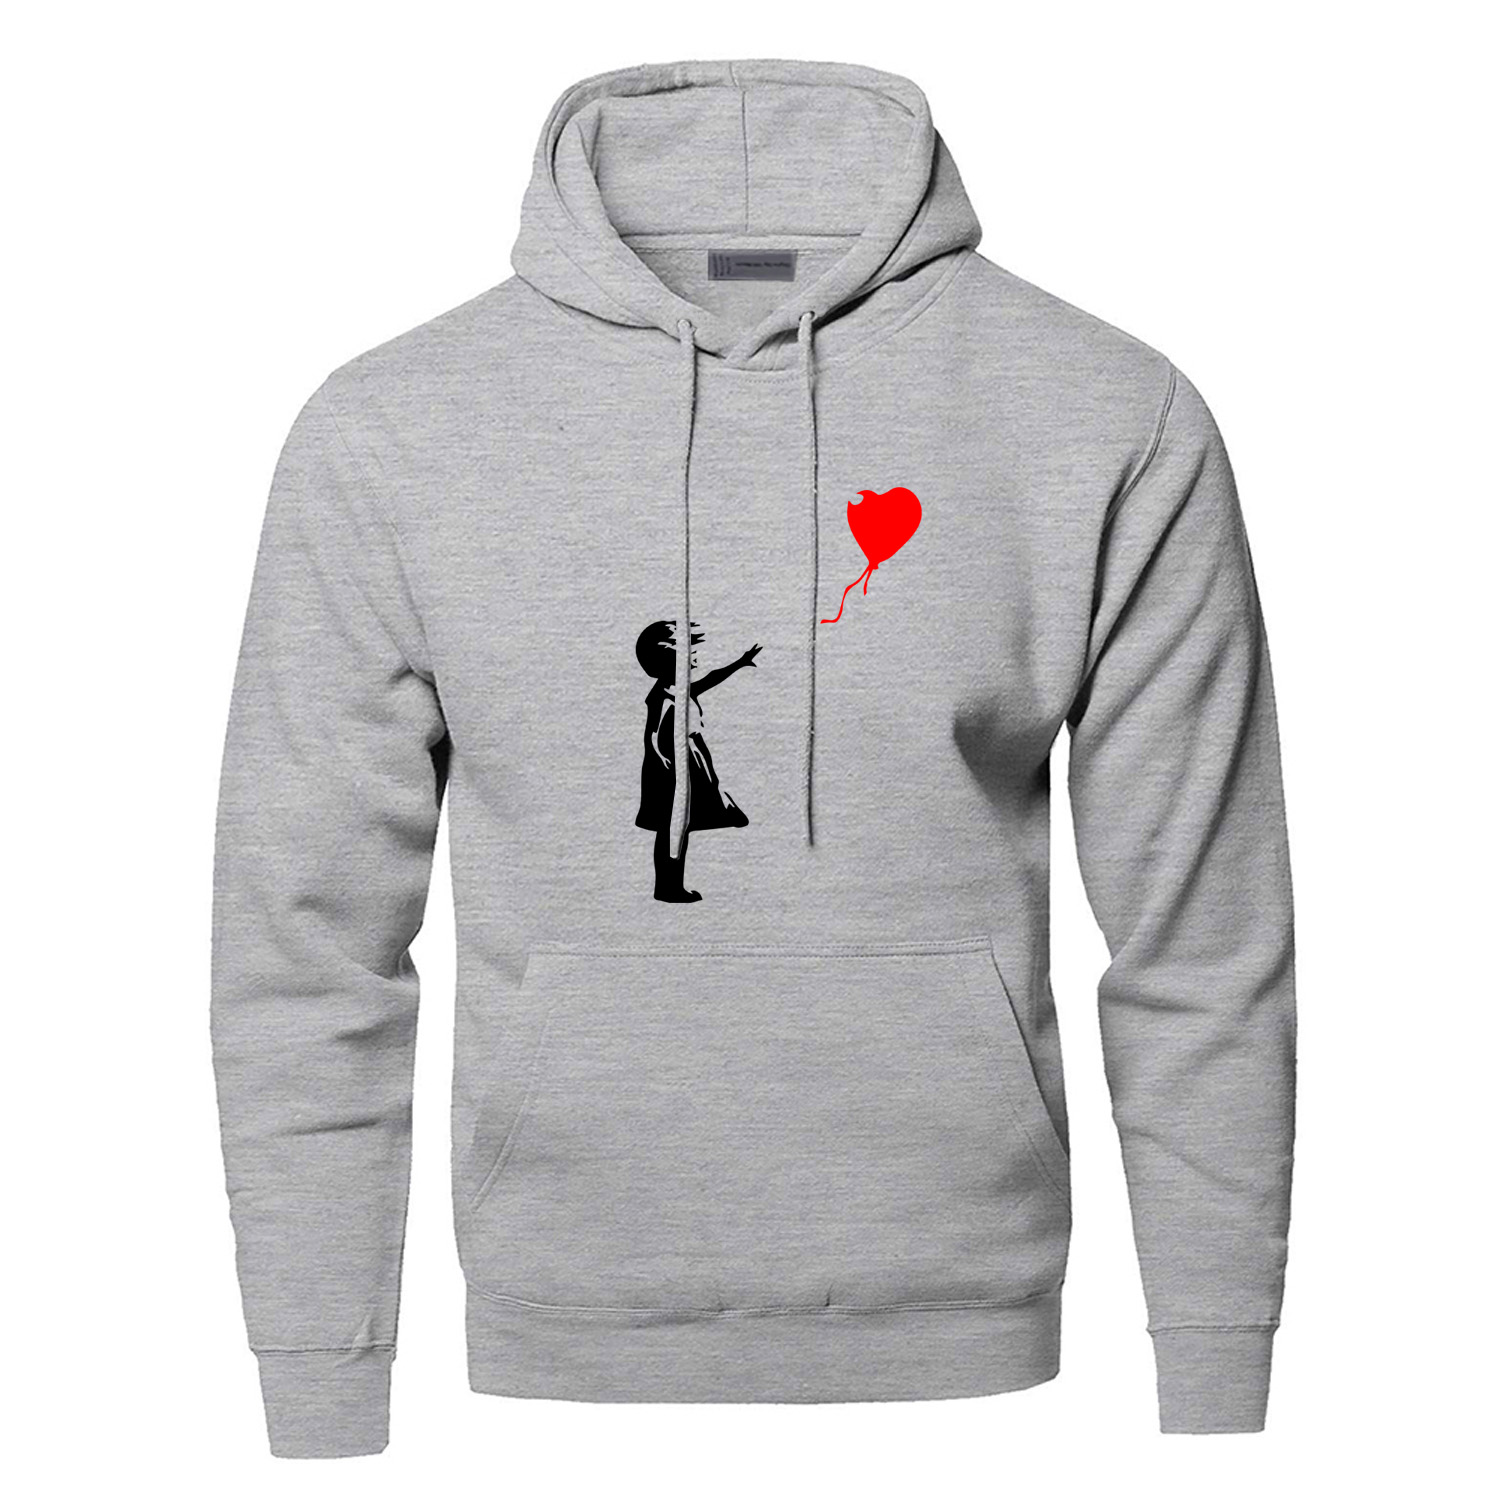 World Peace Hoodies Sweatshirts Men Kcco Balloon Girl Banksy Love Hooded Sweatshirt Hoodie Winter Autumn Warm Print Streetwear